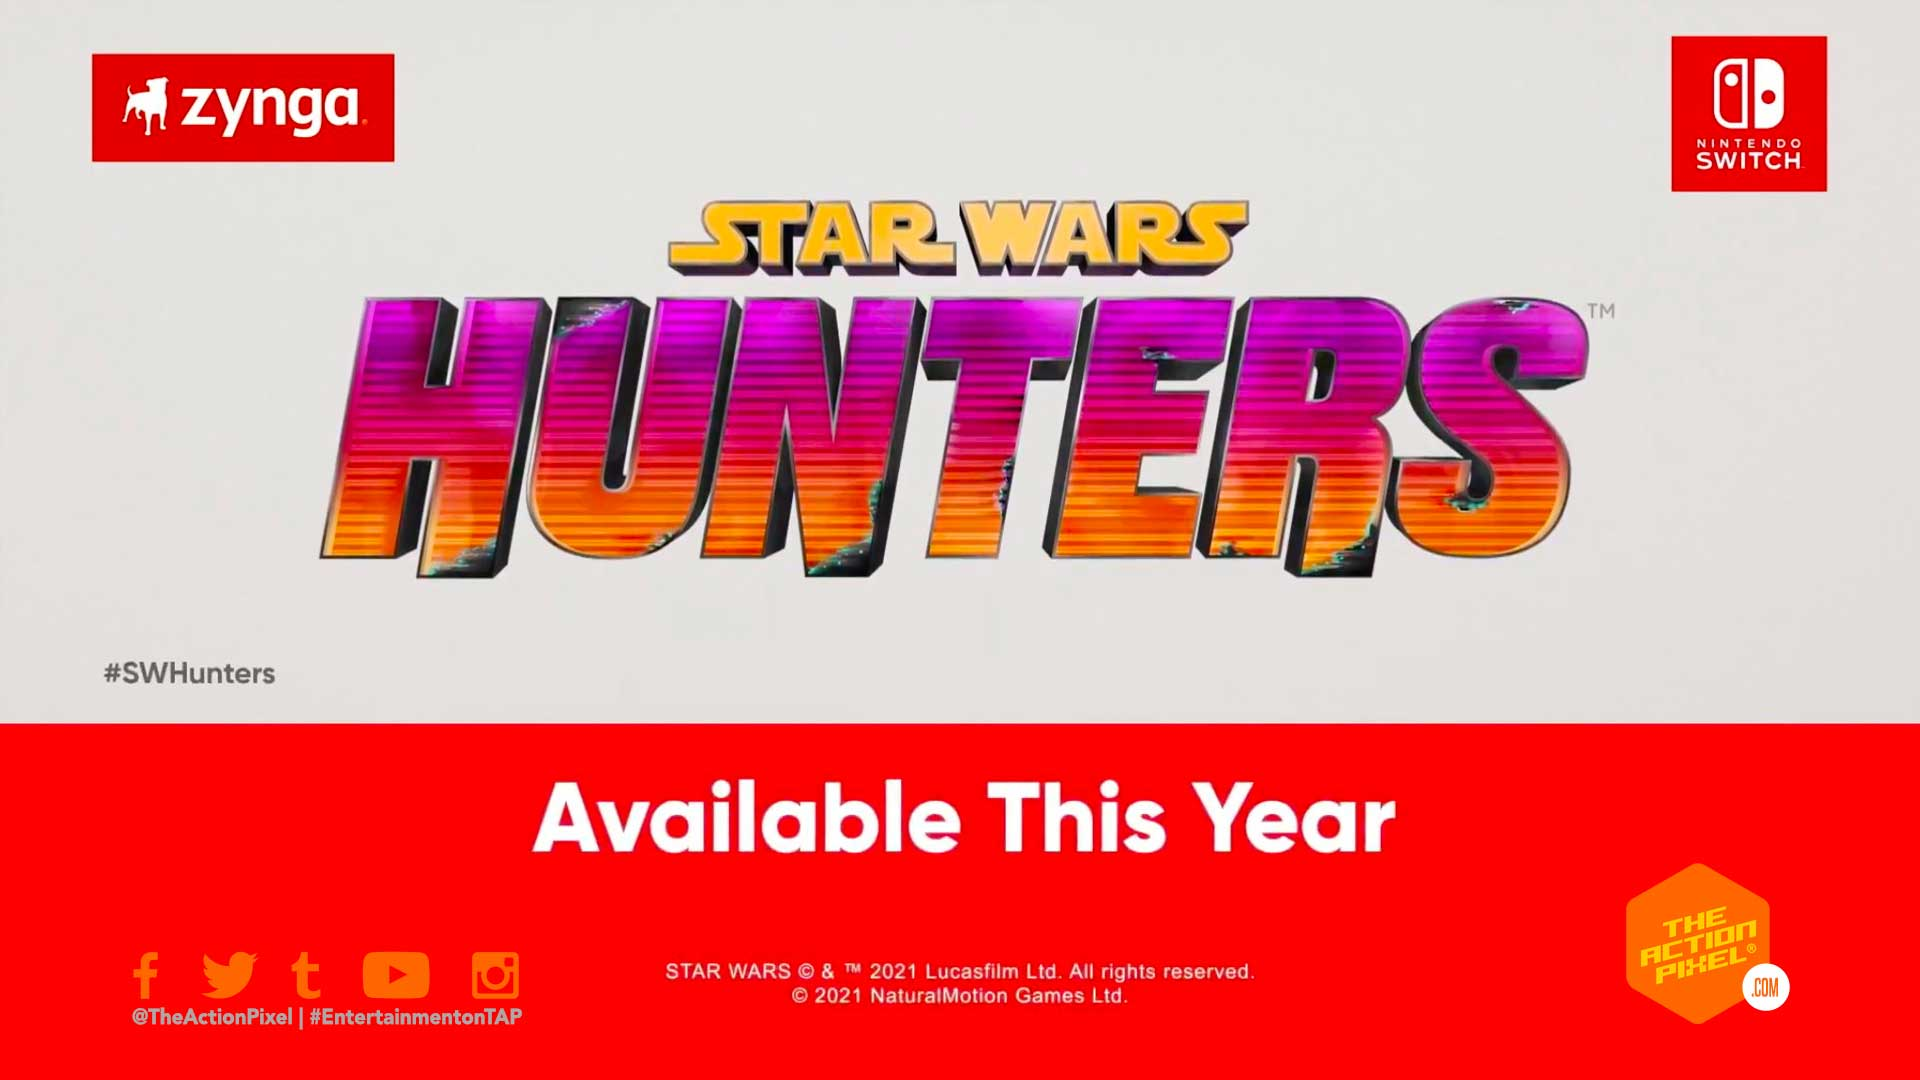 star wars hunters, nintendo direct, nintendo switch, nintendo, the action pixel, entertainment on tap, zynga, lucasfilm,lucasfilm games